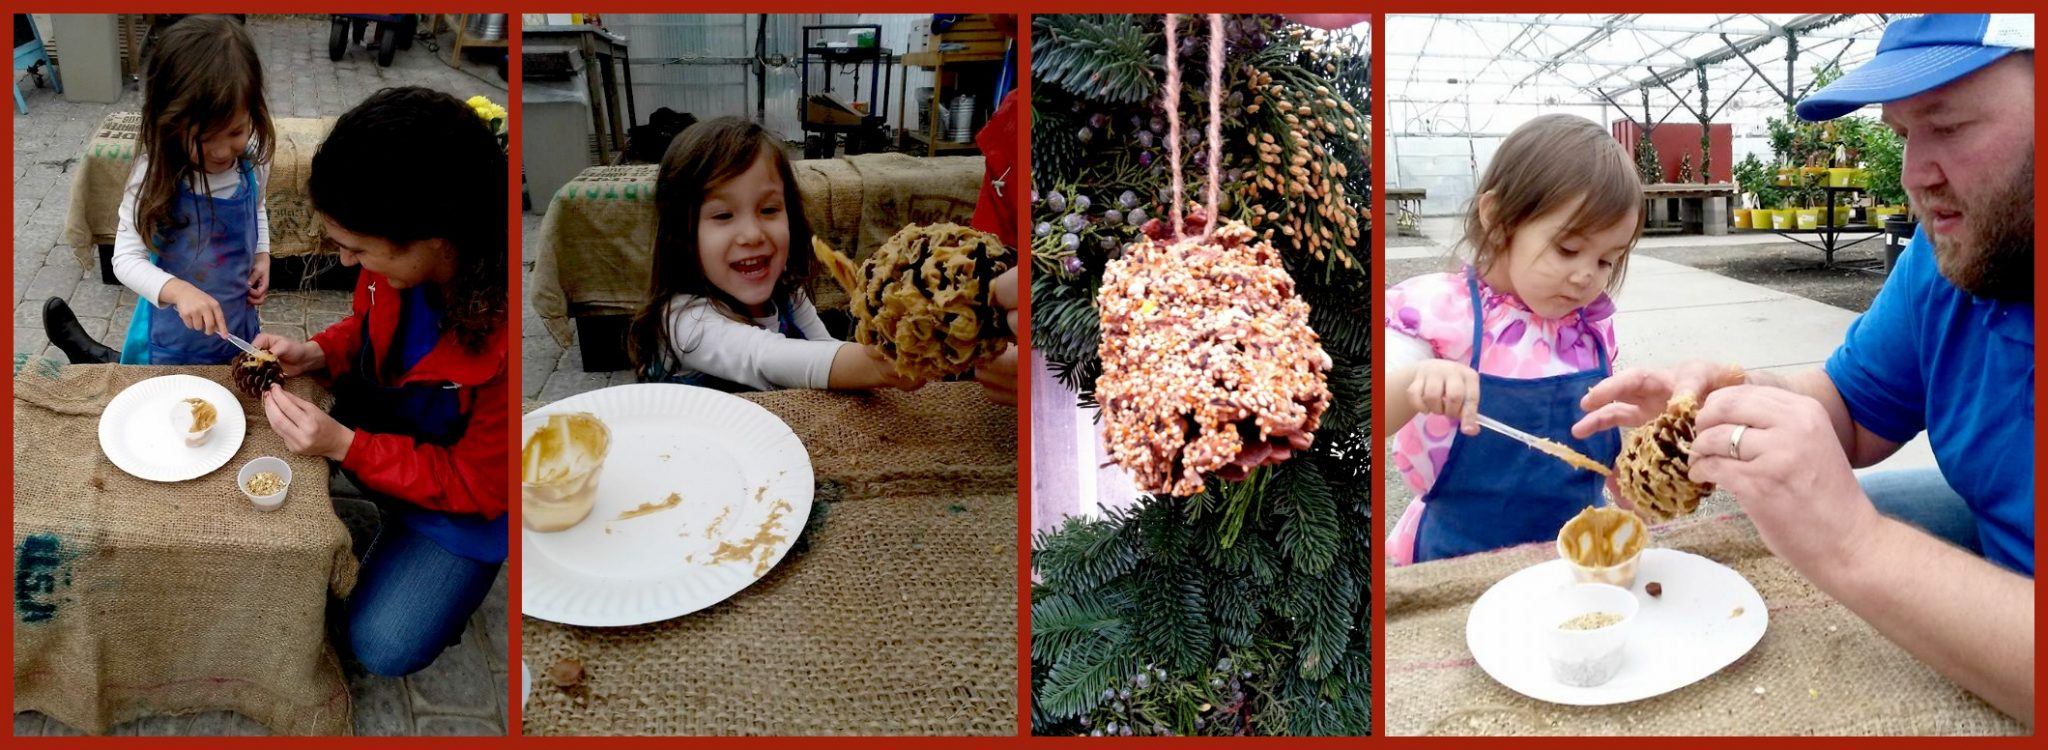 SGCK pinecone feeder collage PM